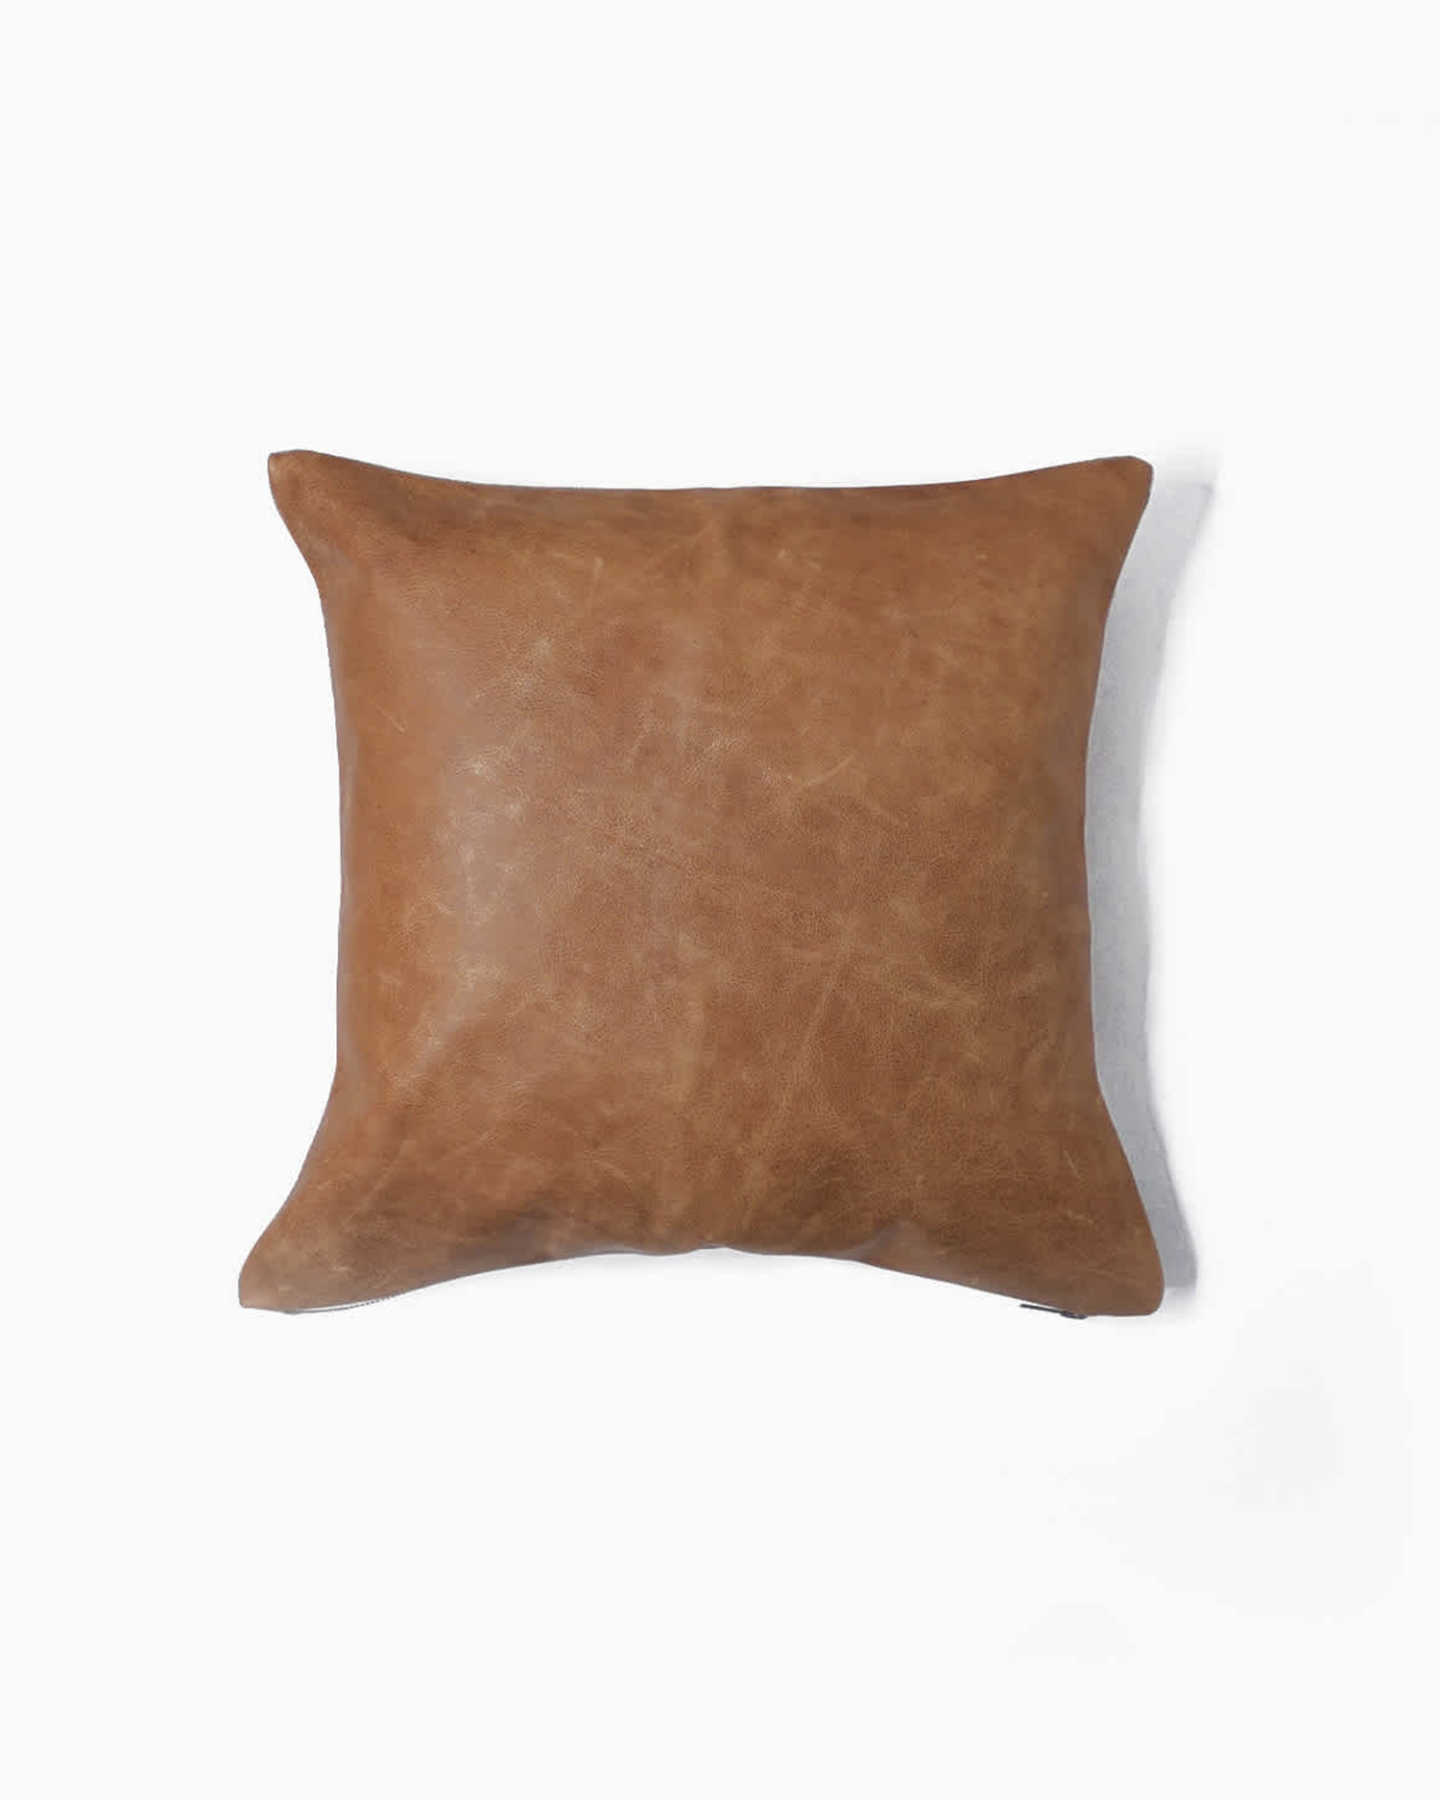 Luxe Leather Pillow Cover - Coco - 0